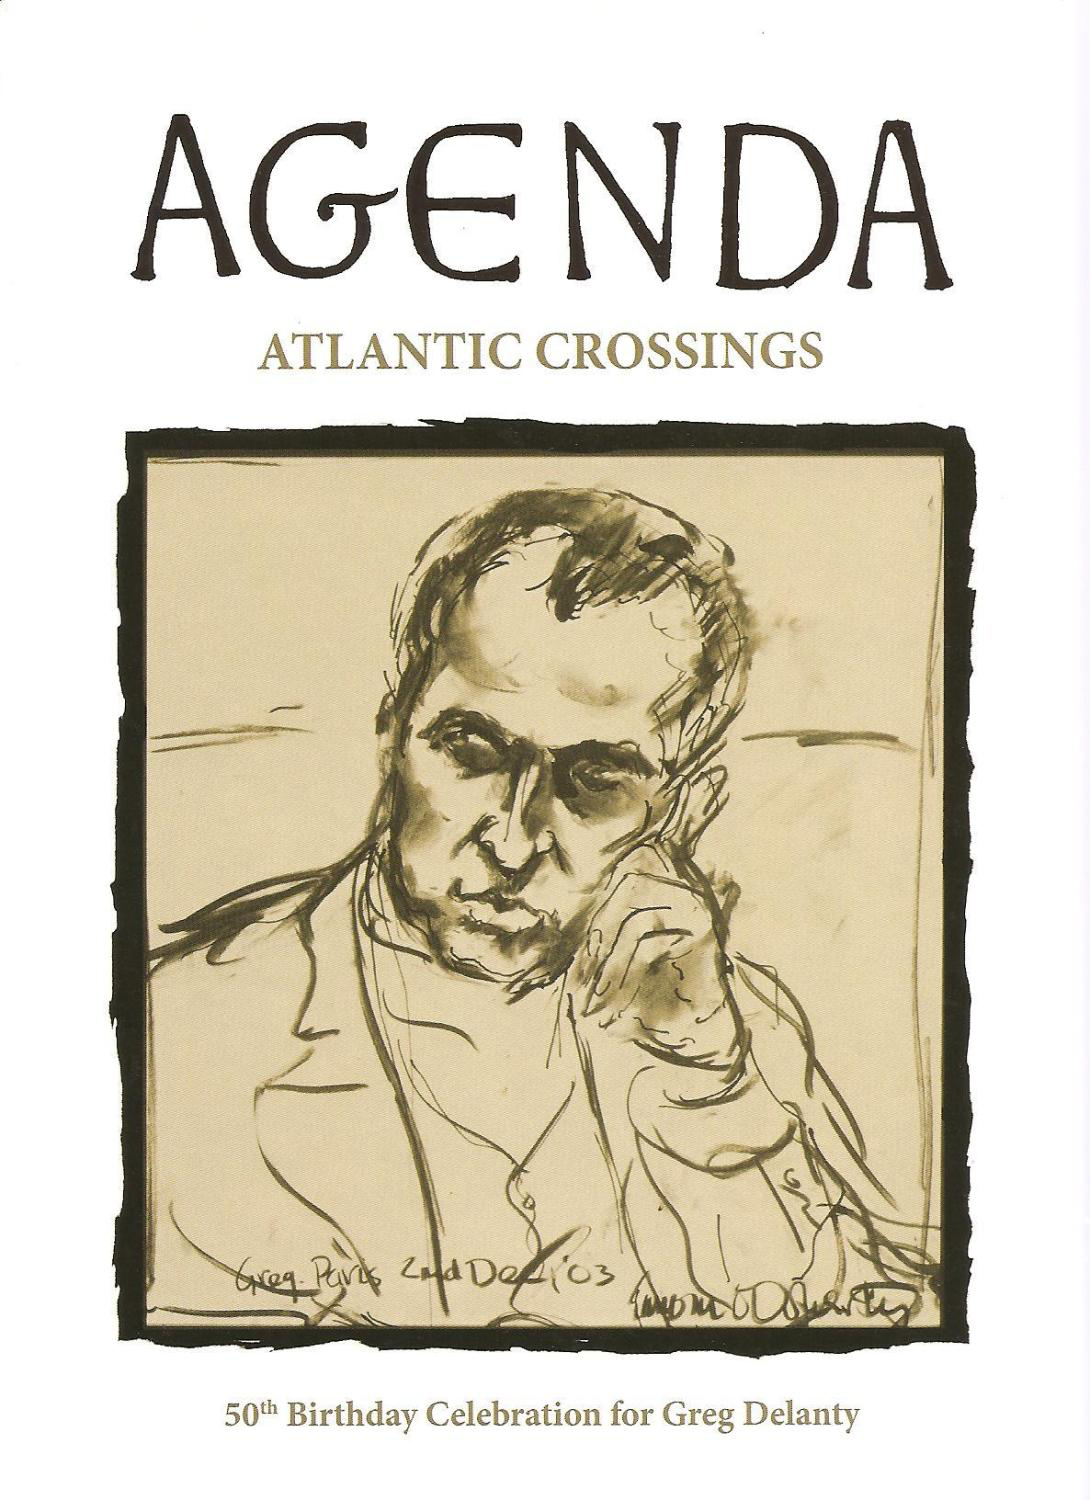 Agenda - Atlantic Crossings